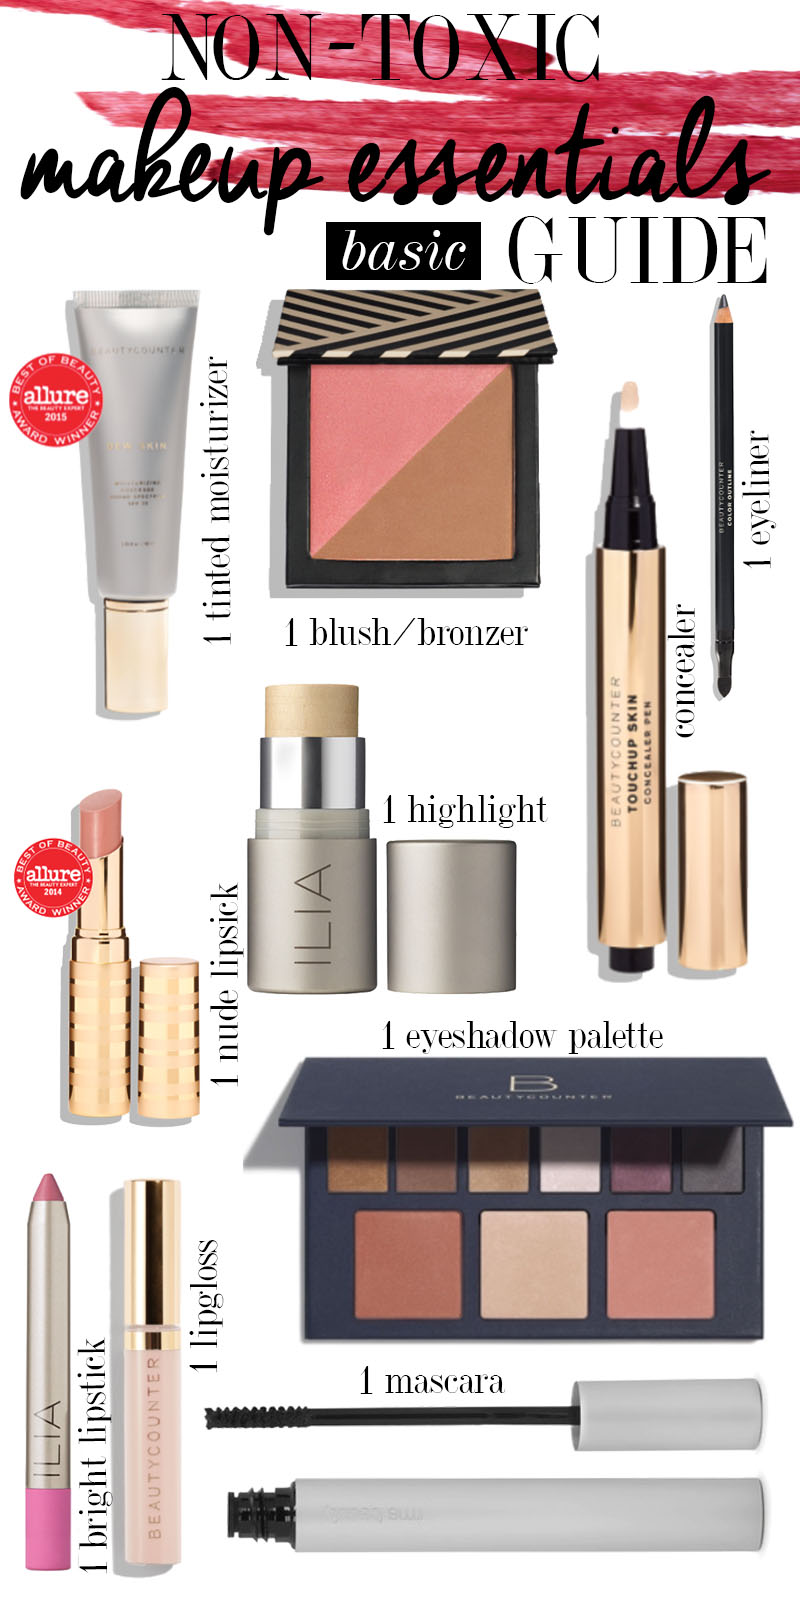 Makeup Essentials Must Haves From Makeup Artists Part 1: Ultimate Non-Toxic Makeup Essentials Beauty Guide